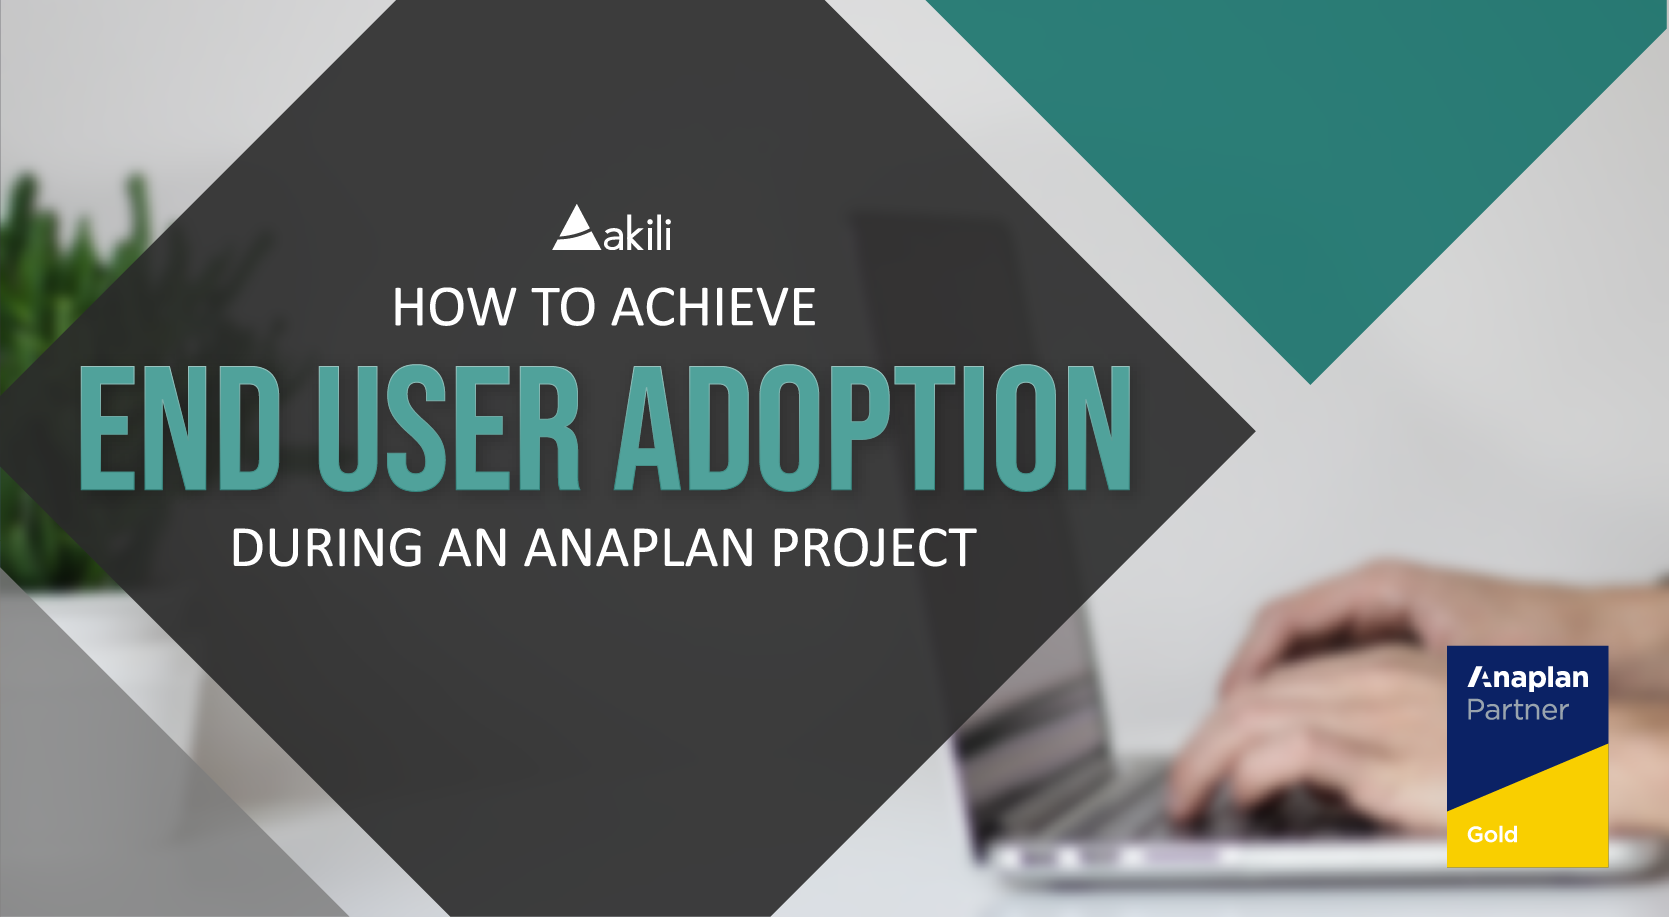 How to achieve end user adoption during an Anaplan project